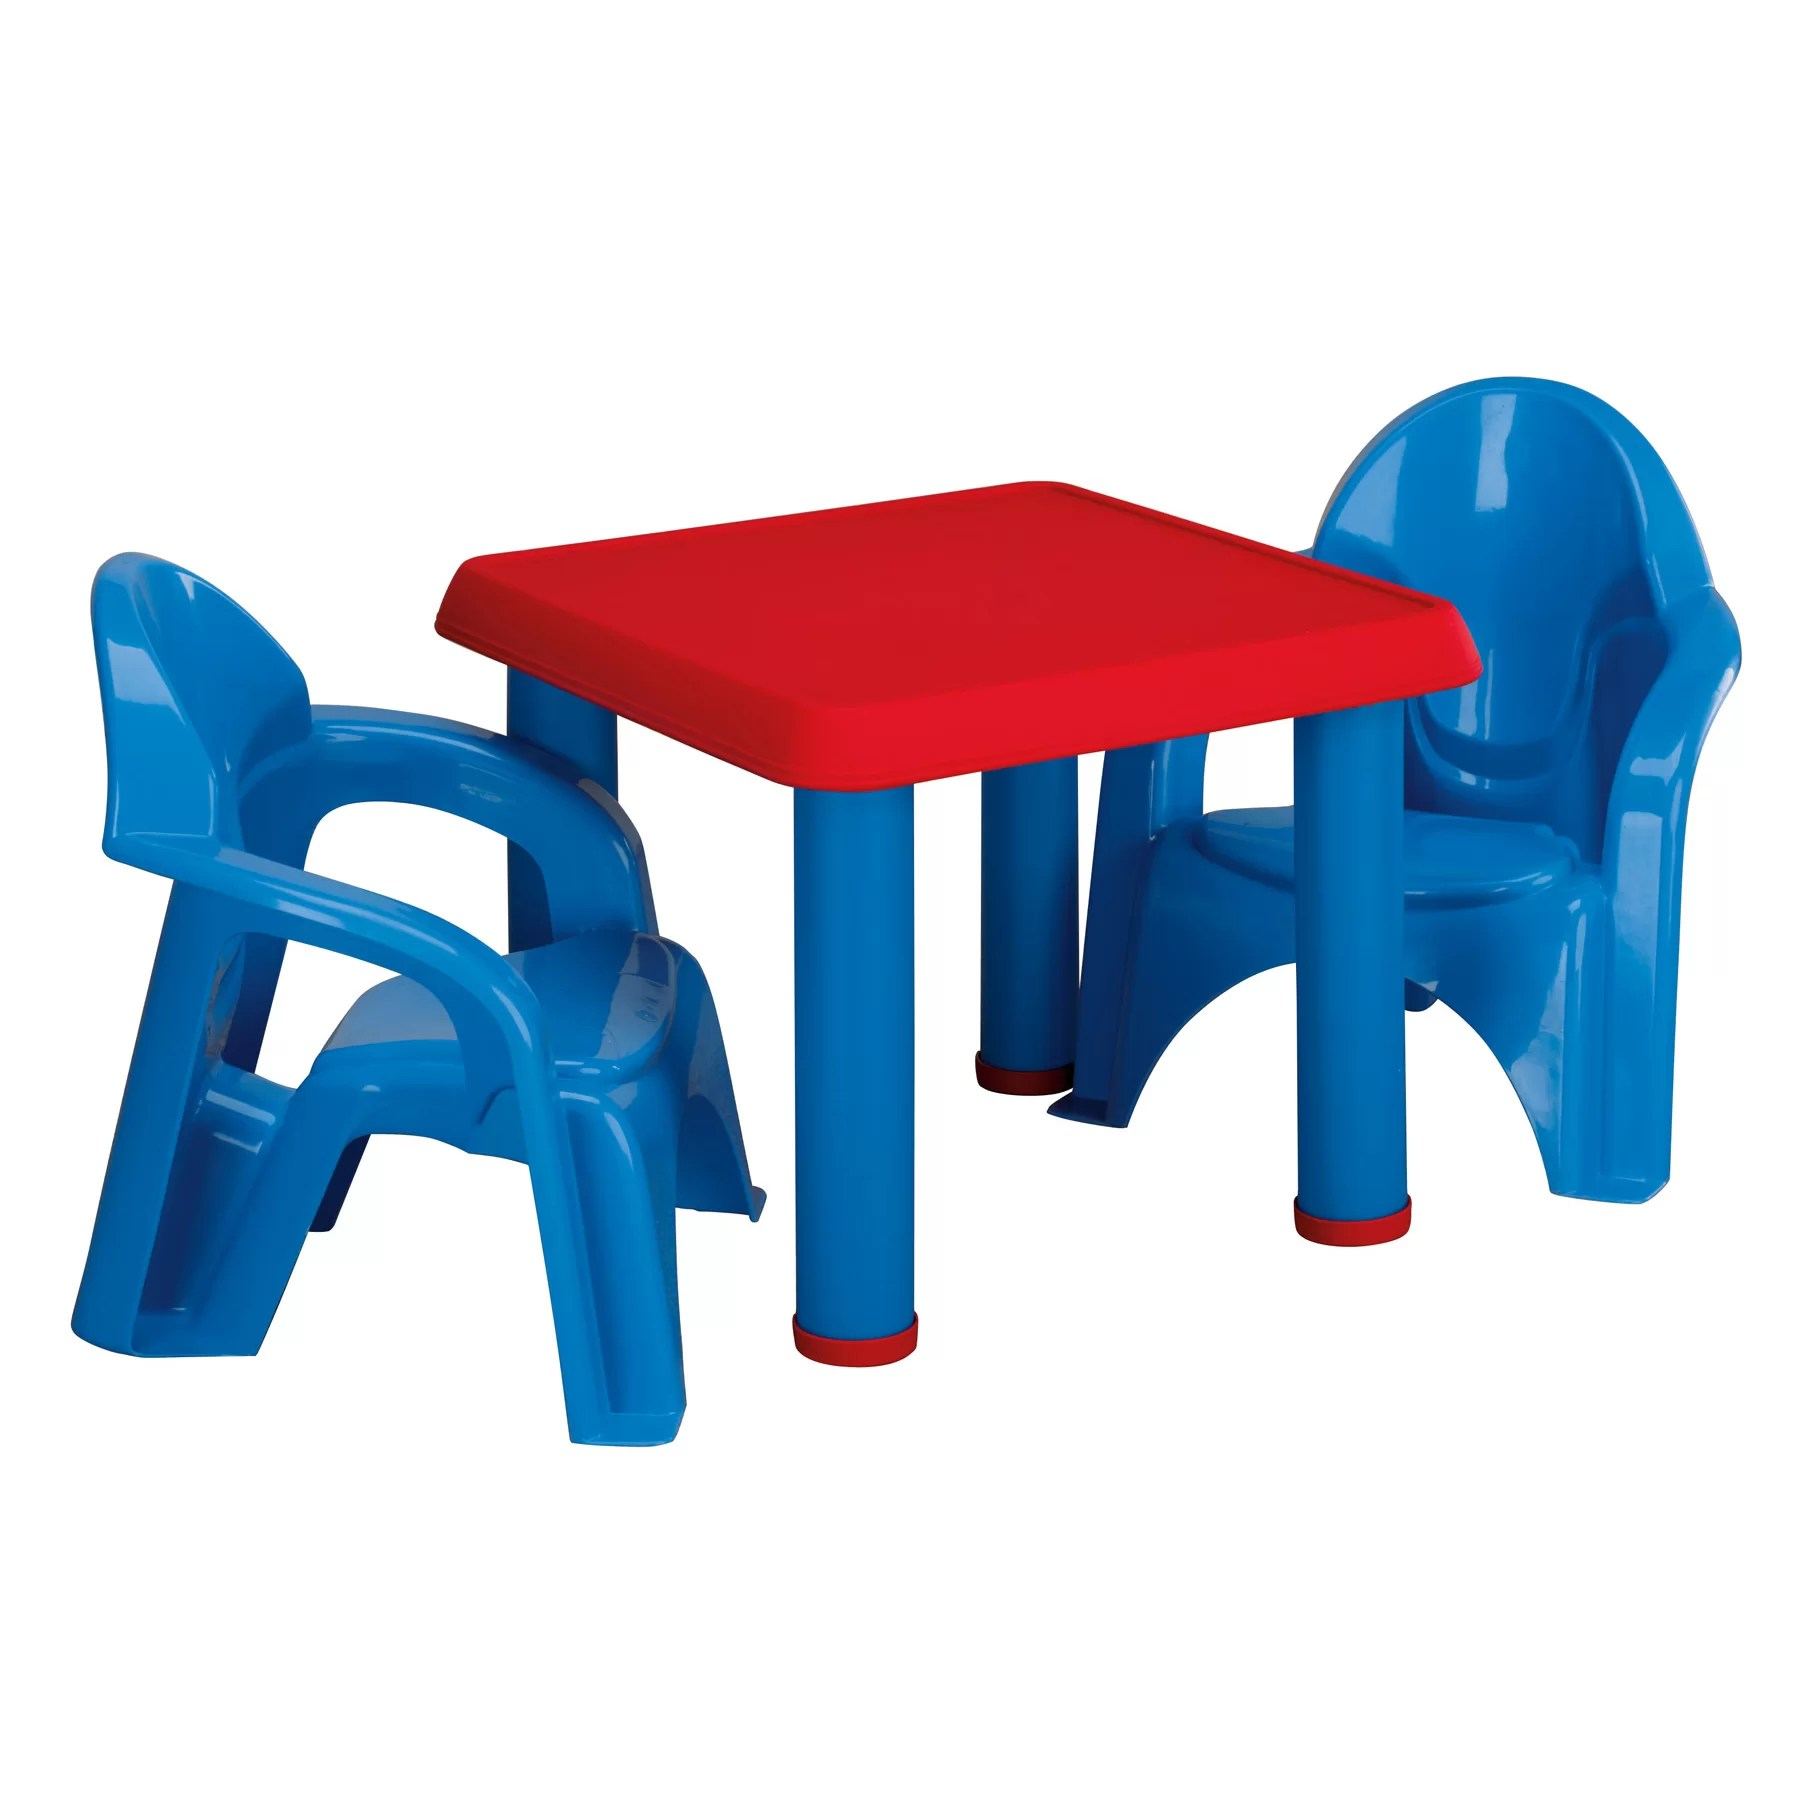 safety 1st 5 piece childrens table and chair set folding carts american plastic toys kids 3